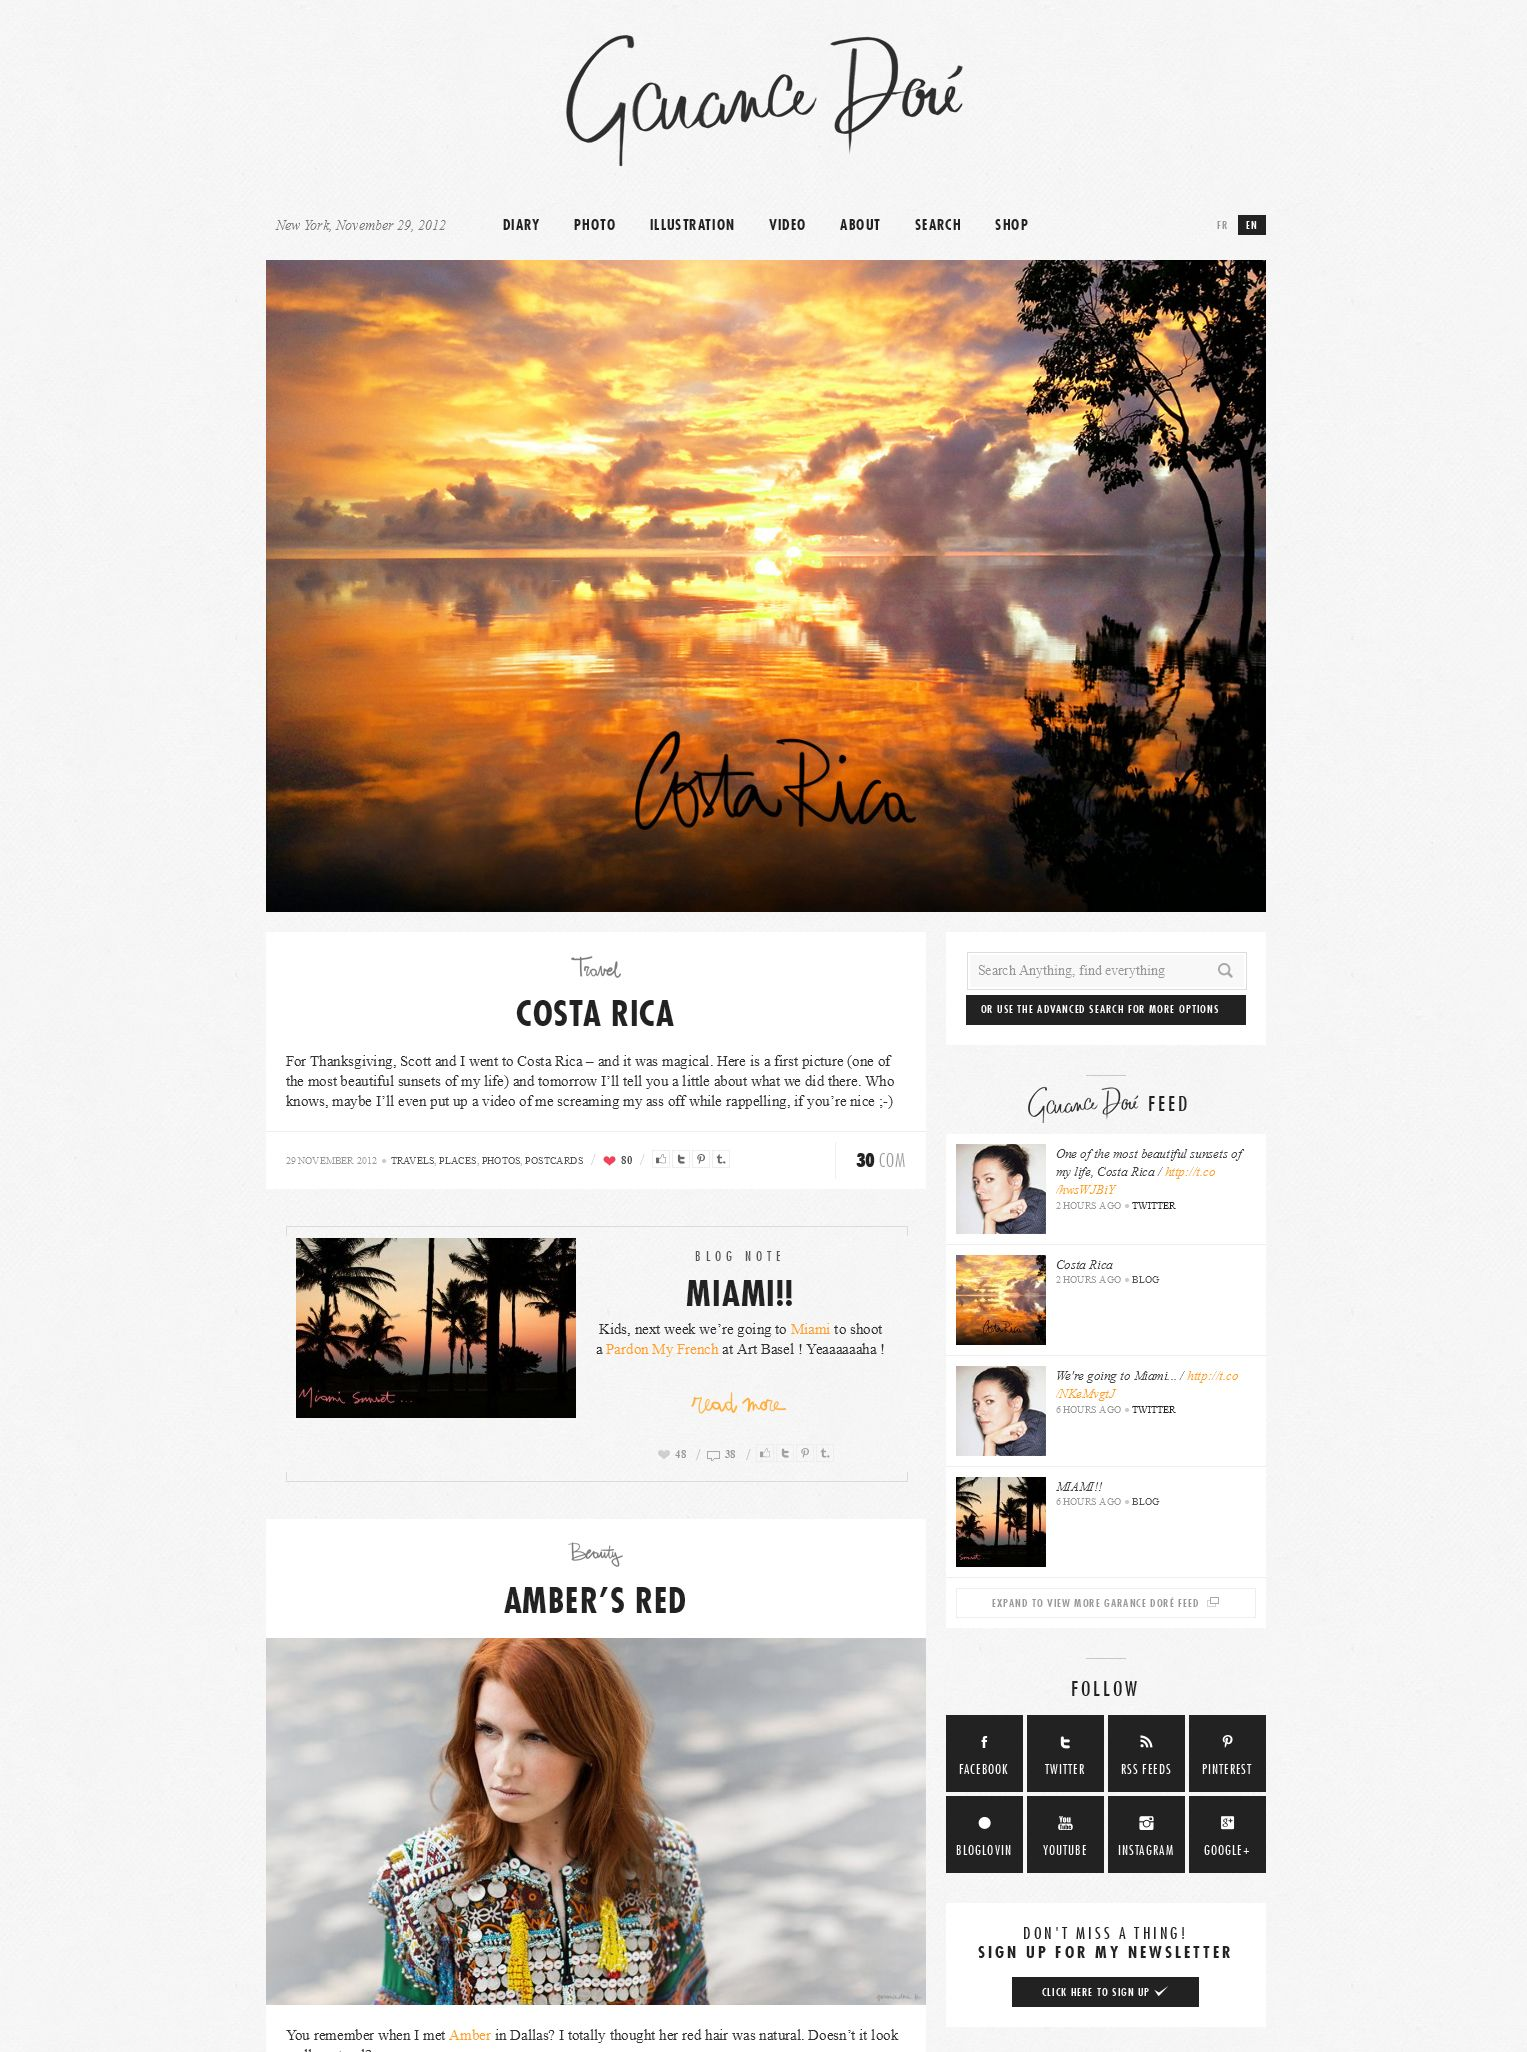 refined palette, solid branding, exquisite blog layout -- clean & classic